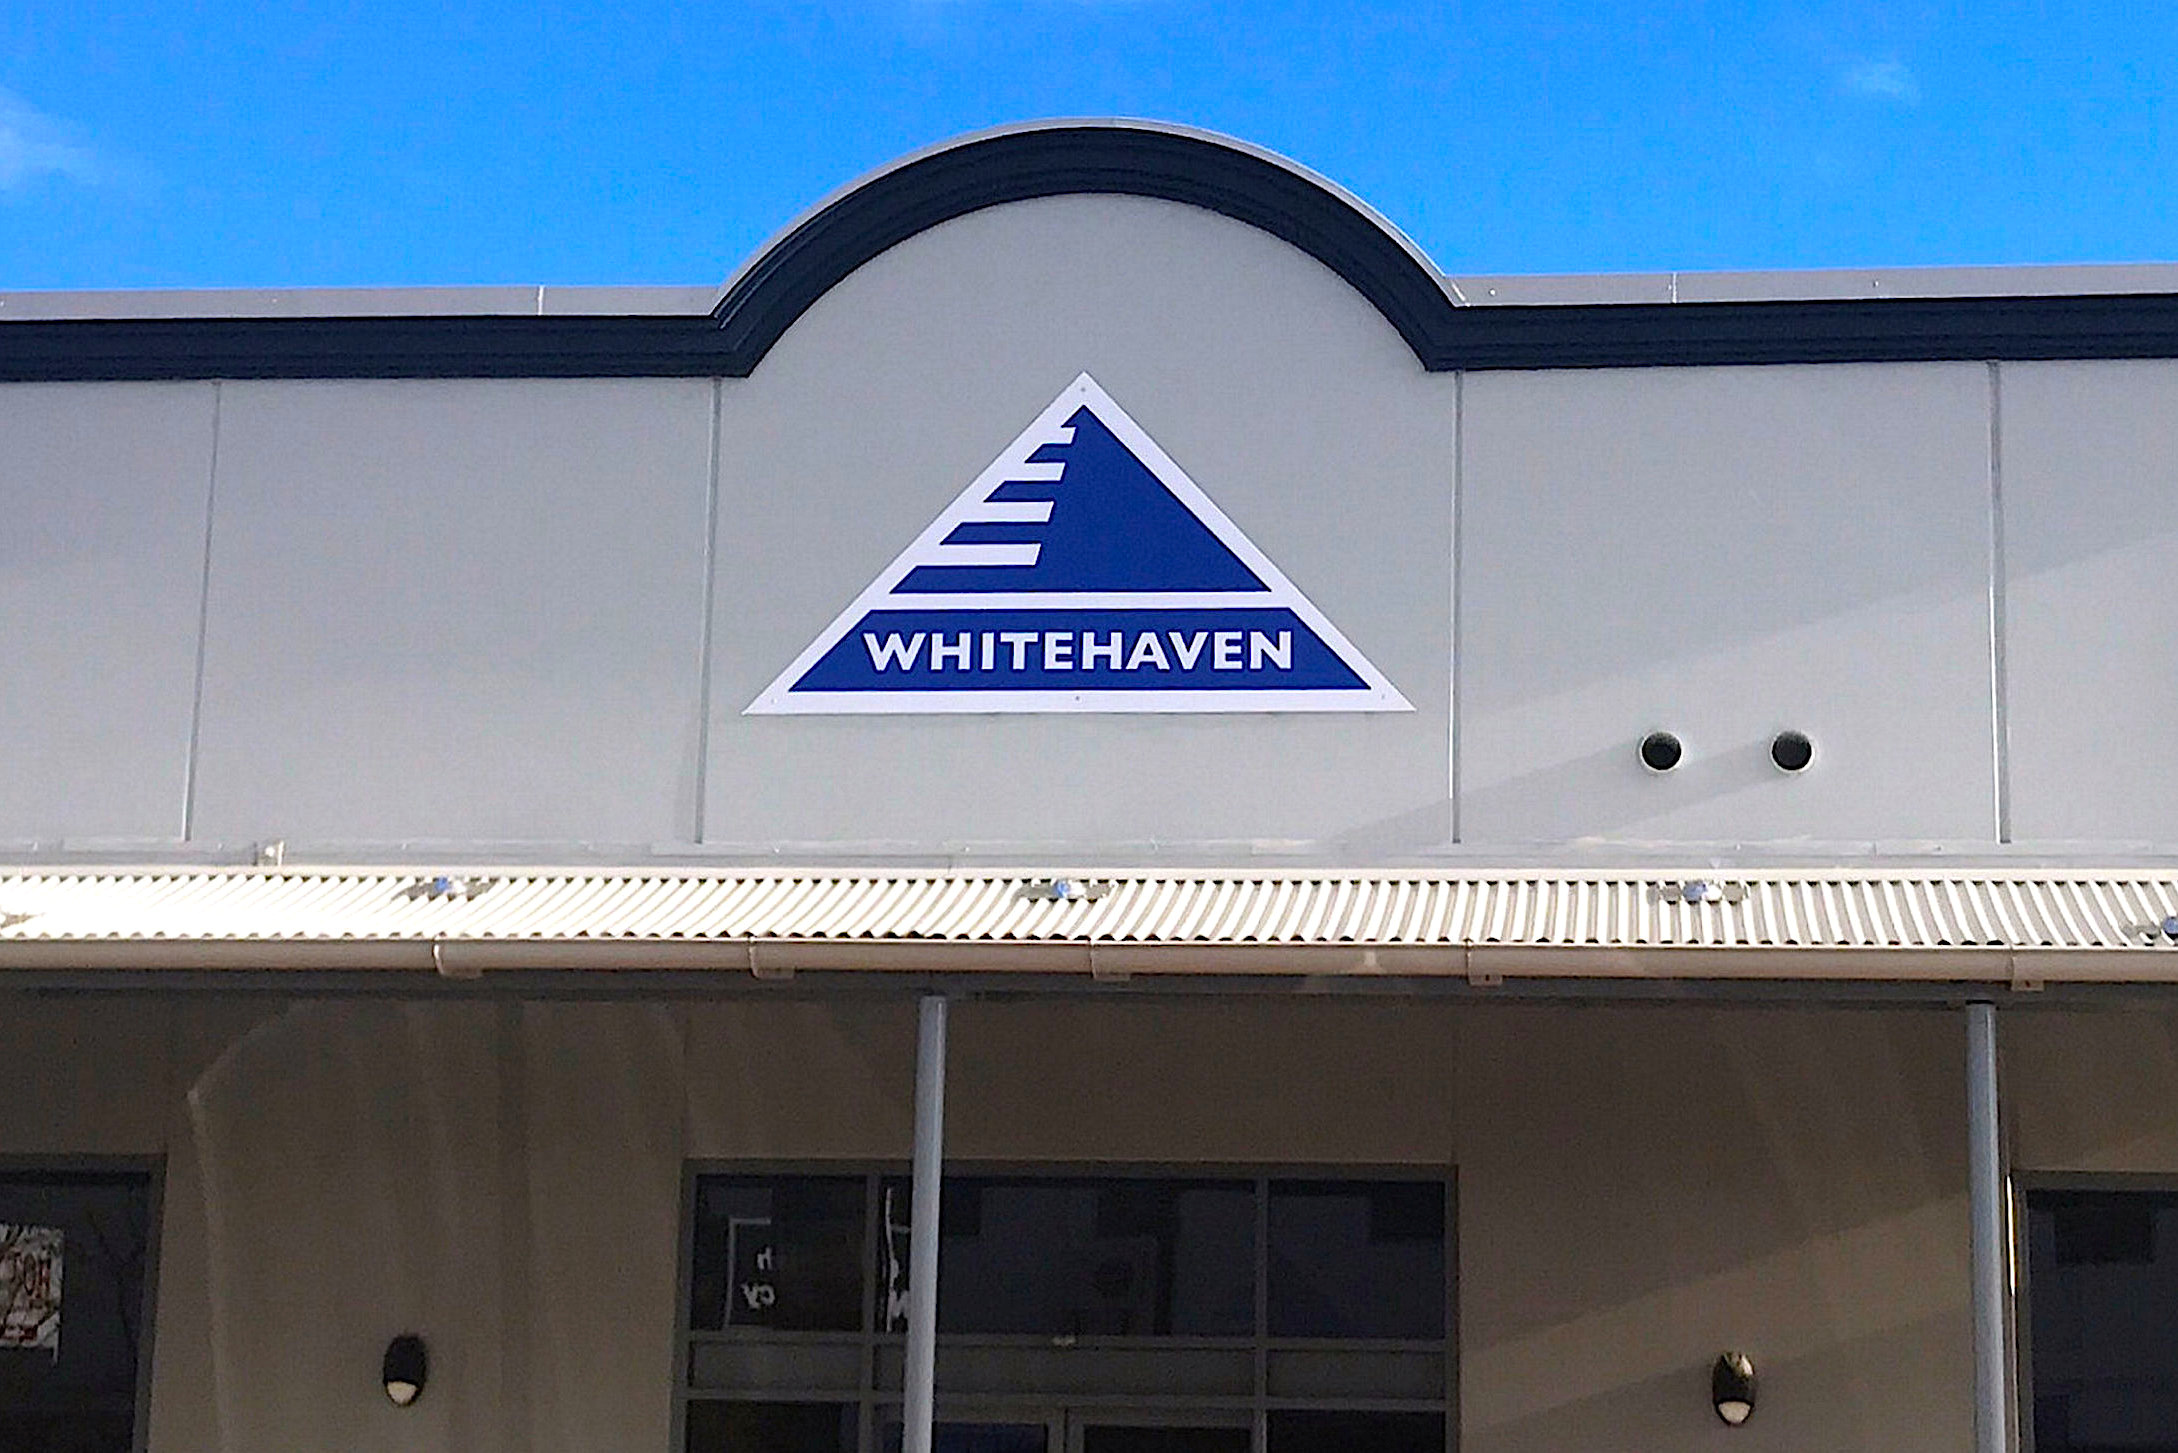 The logo of Australia's biggest independent coal miner Whitehaven Coal Ltd is displayed on their office building located in the north-western New South Wales town of Gunnedah in Australia, August 15, 2017. REUTERS/David Gray